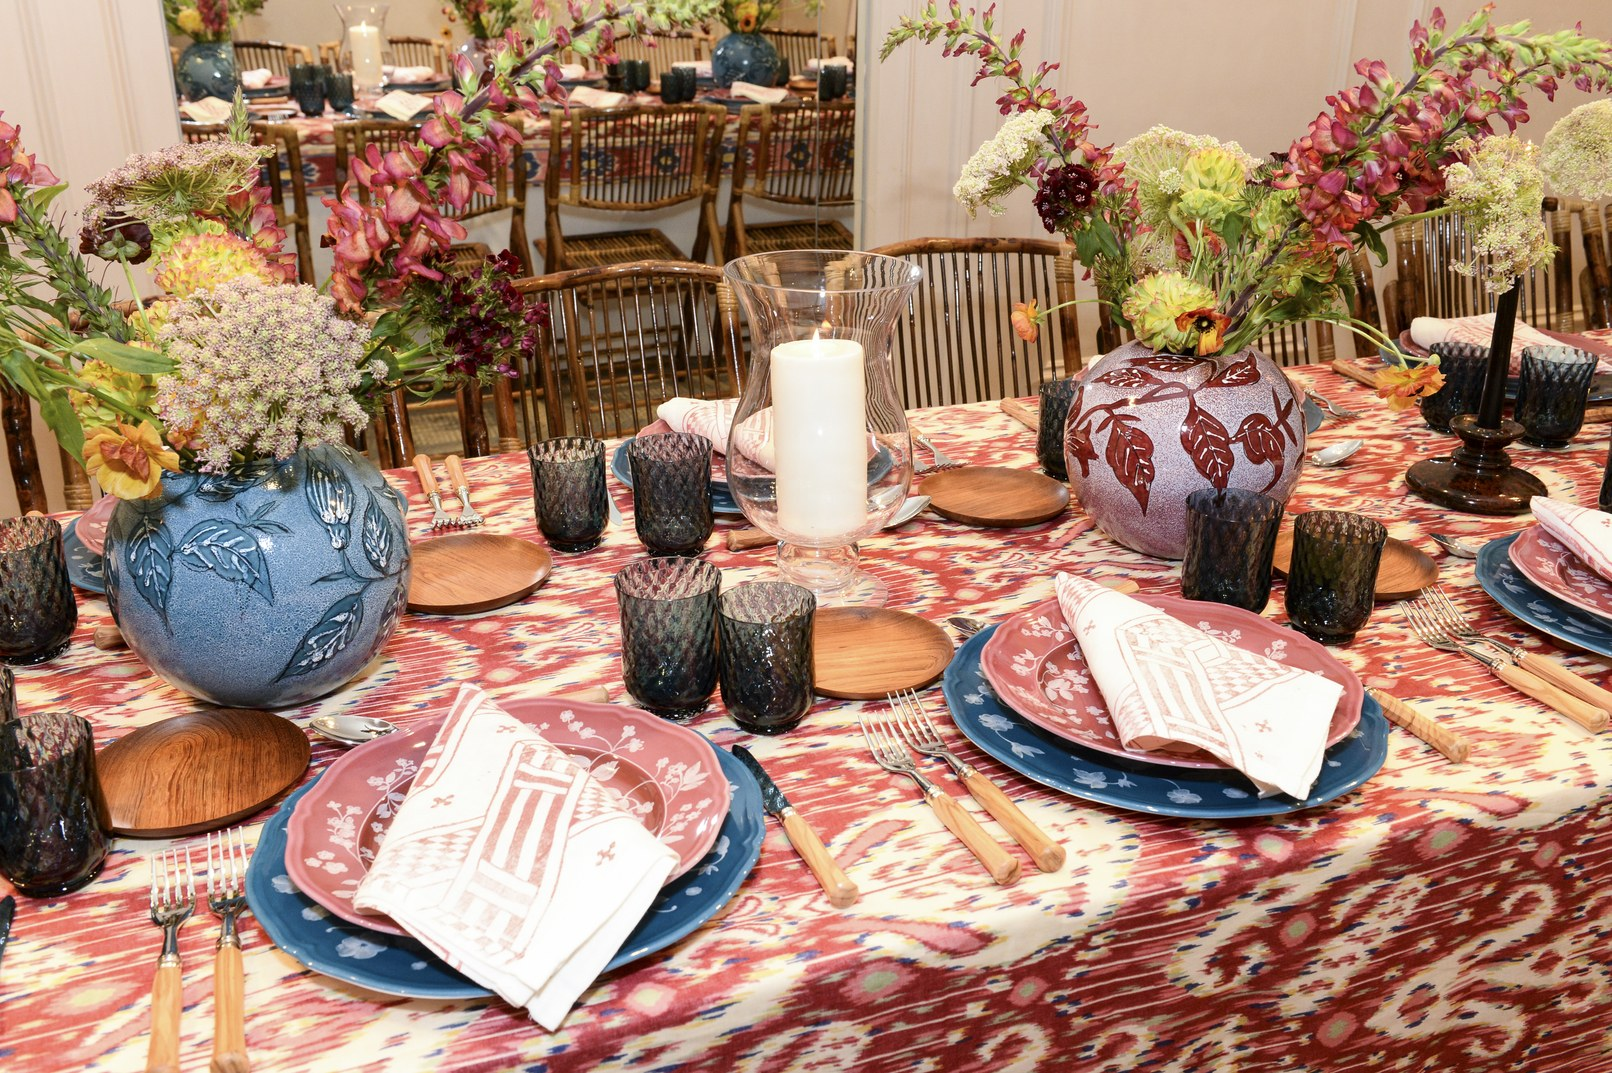 Well-Dressed Lifestyle Tabletop Moda Operandi and Cabana Forever Chic by Meg